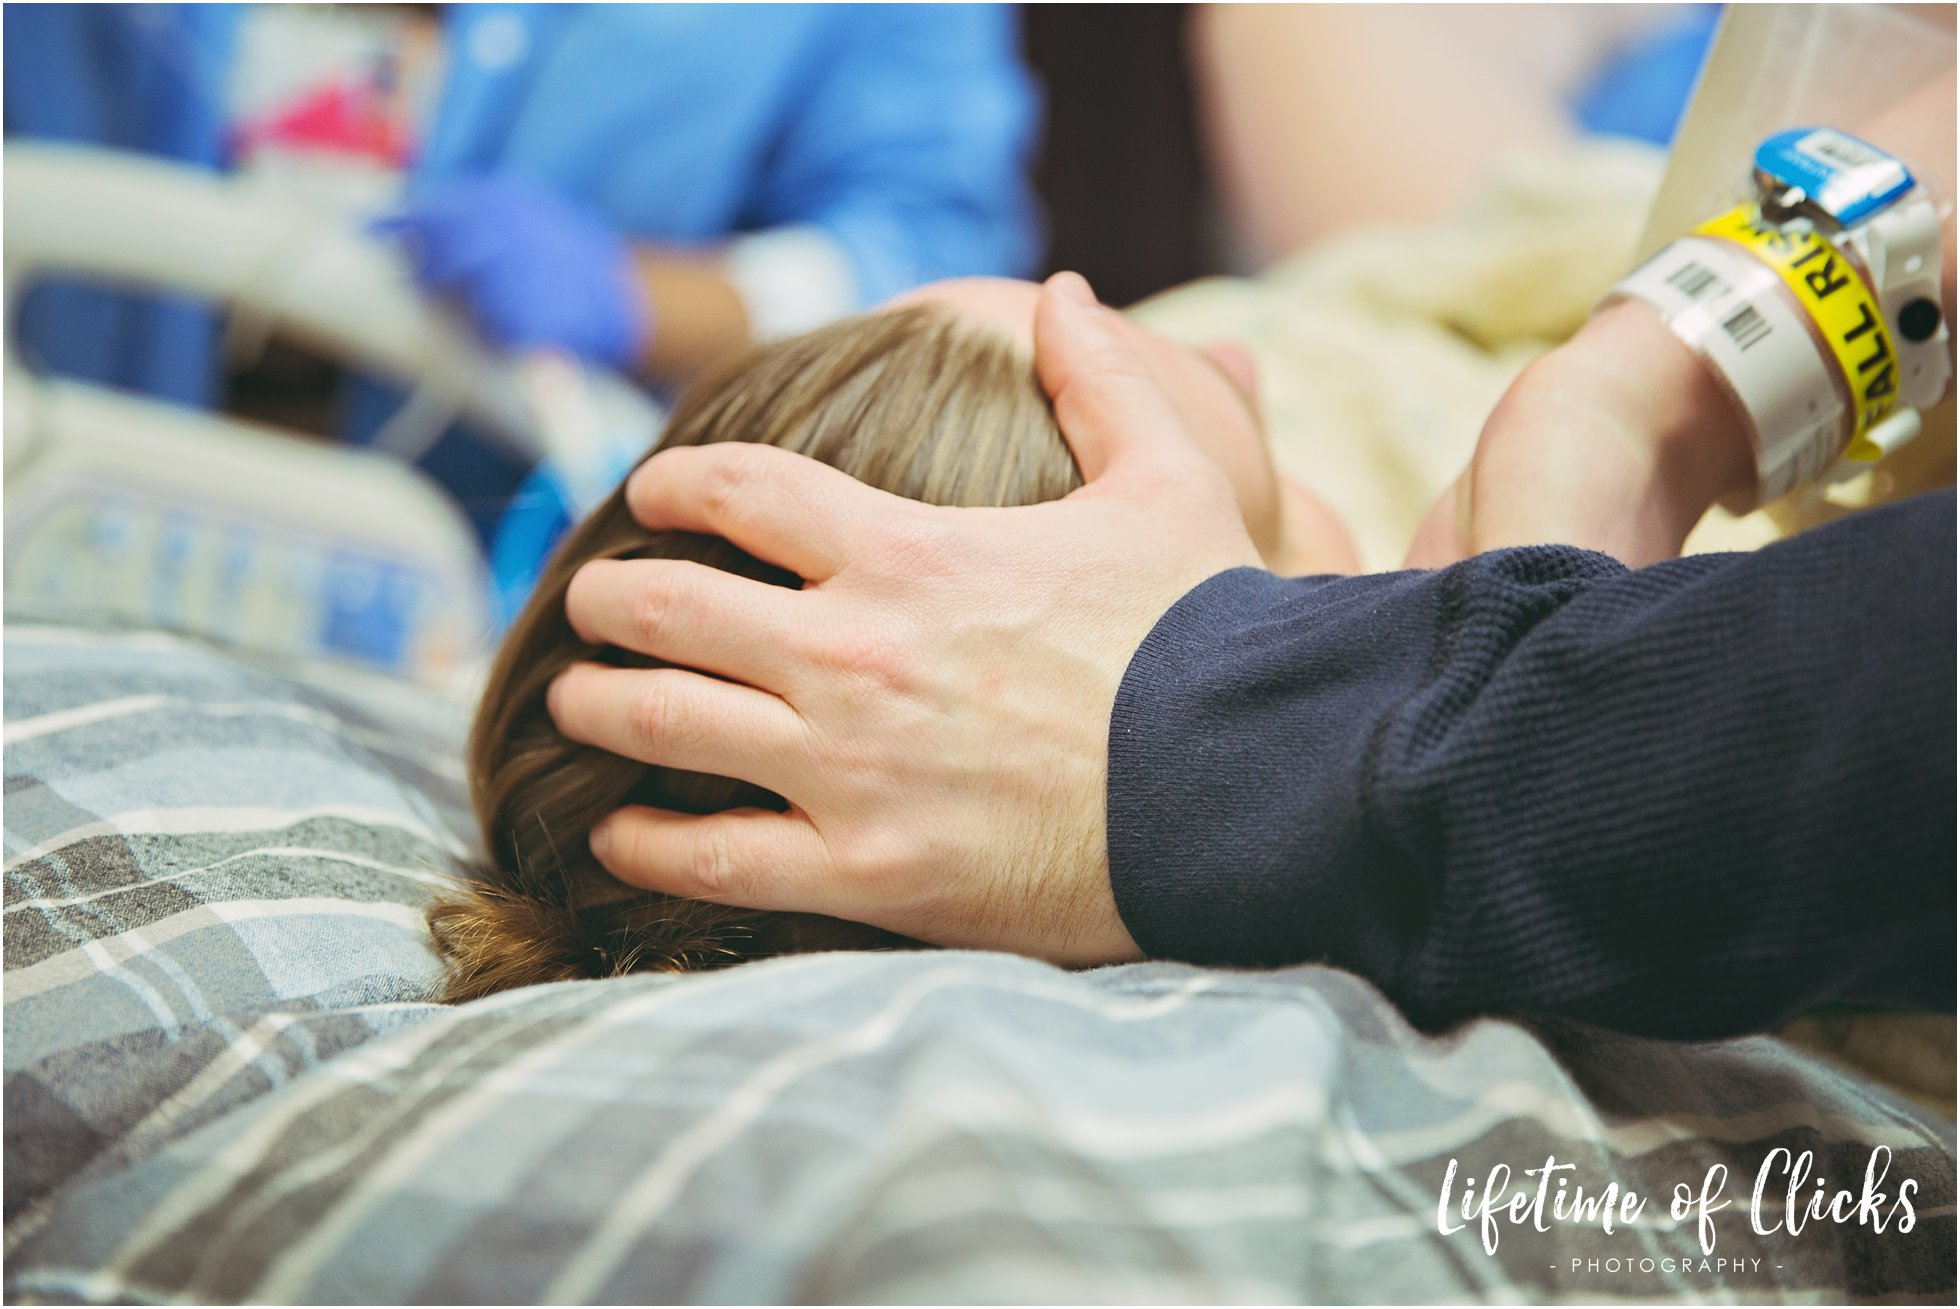 Tender moment between husband and wife during birth photography session